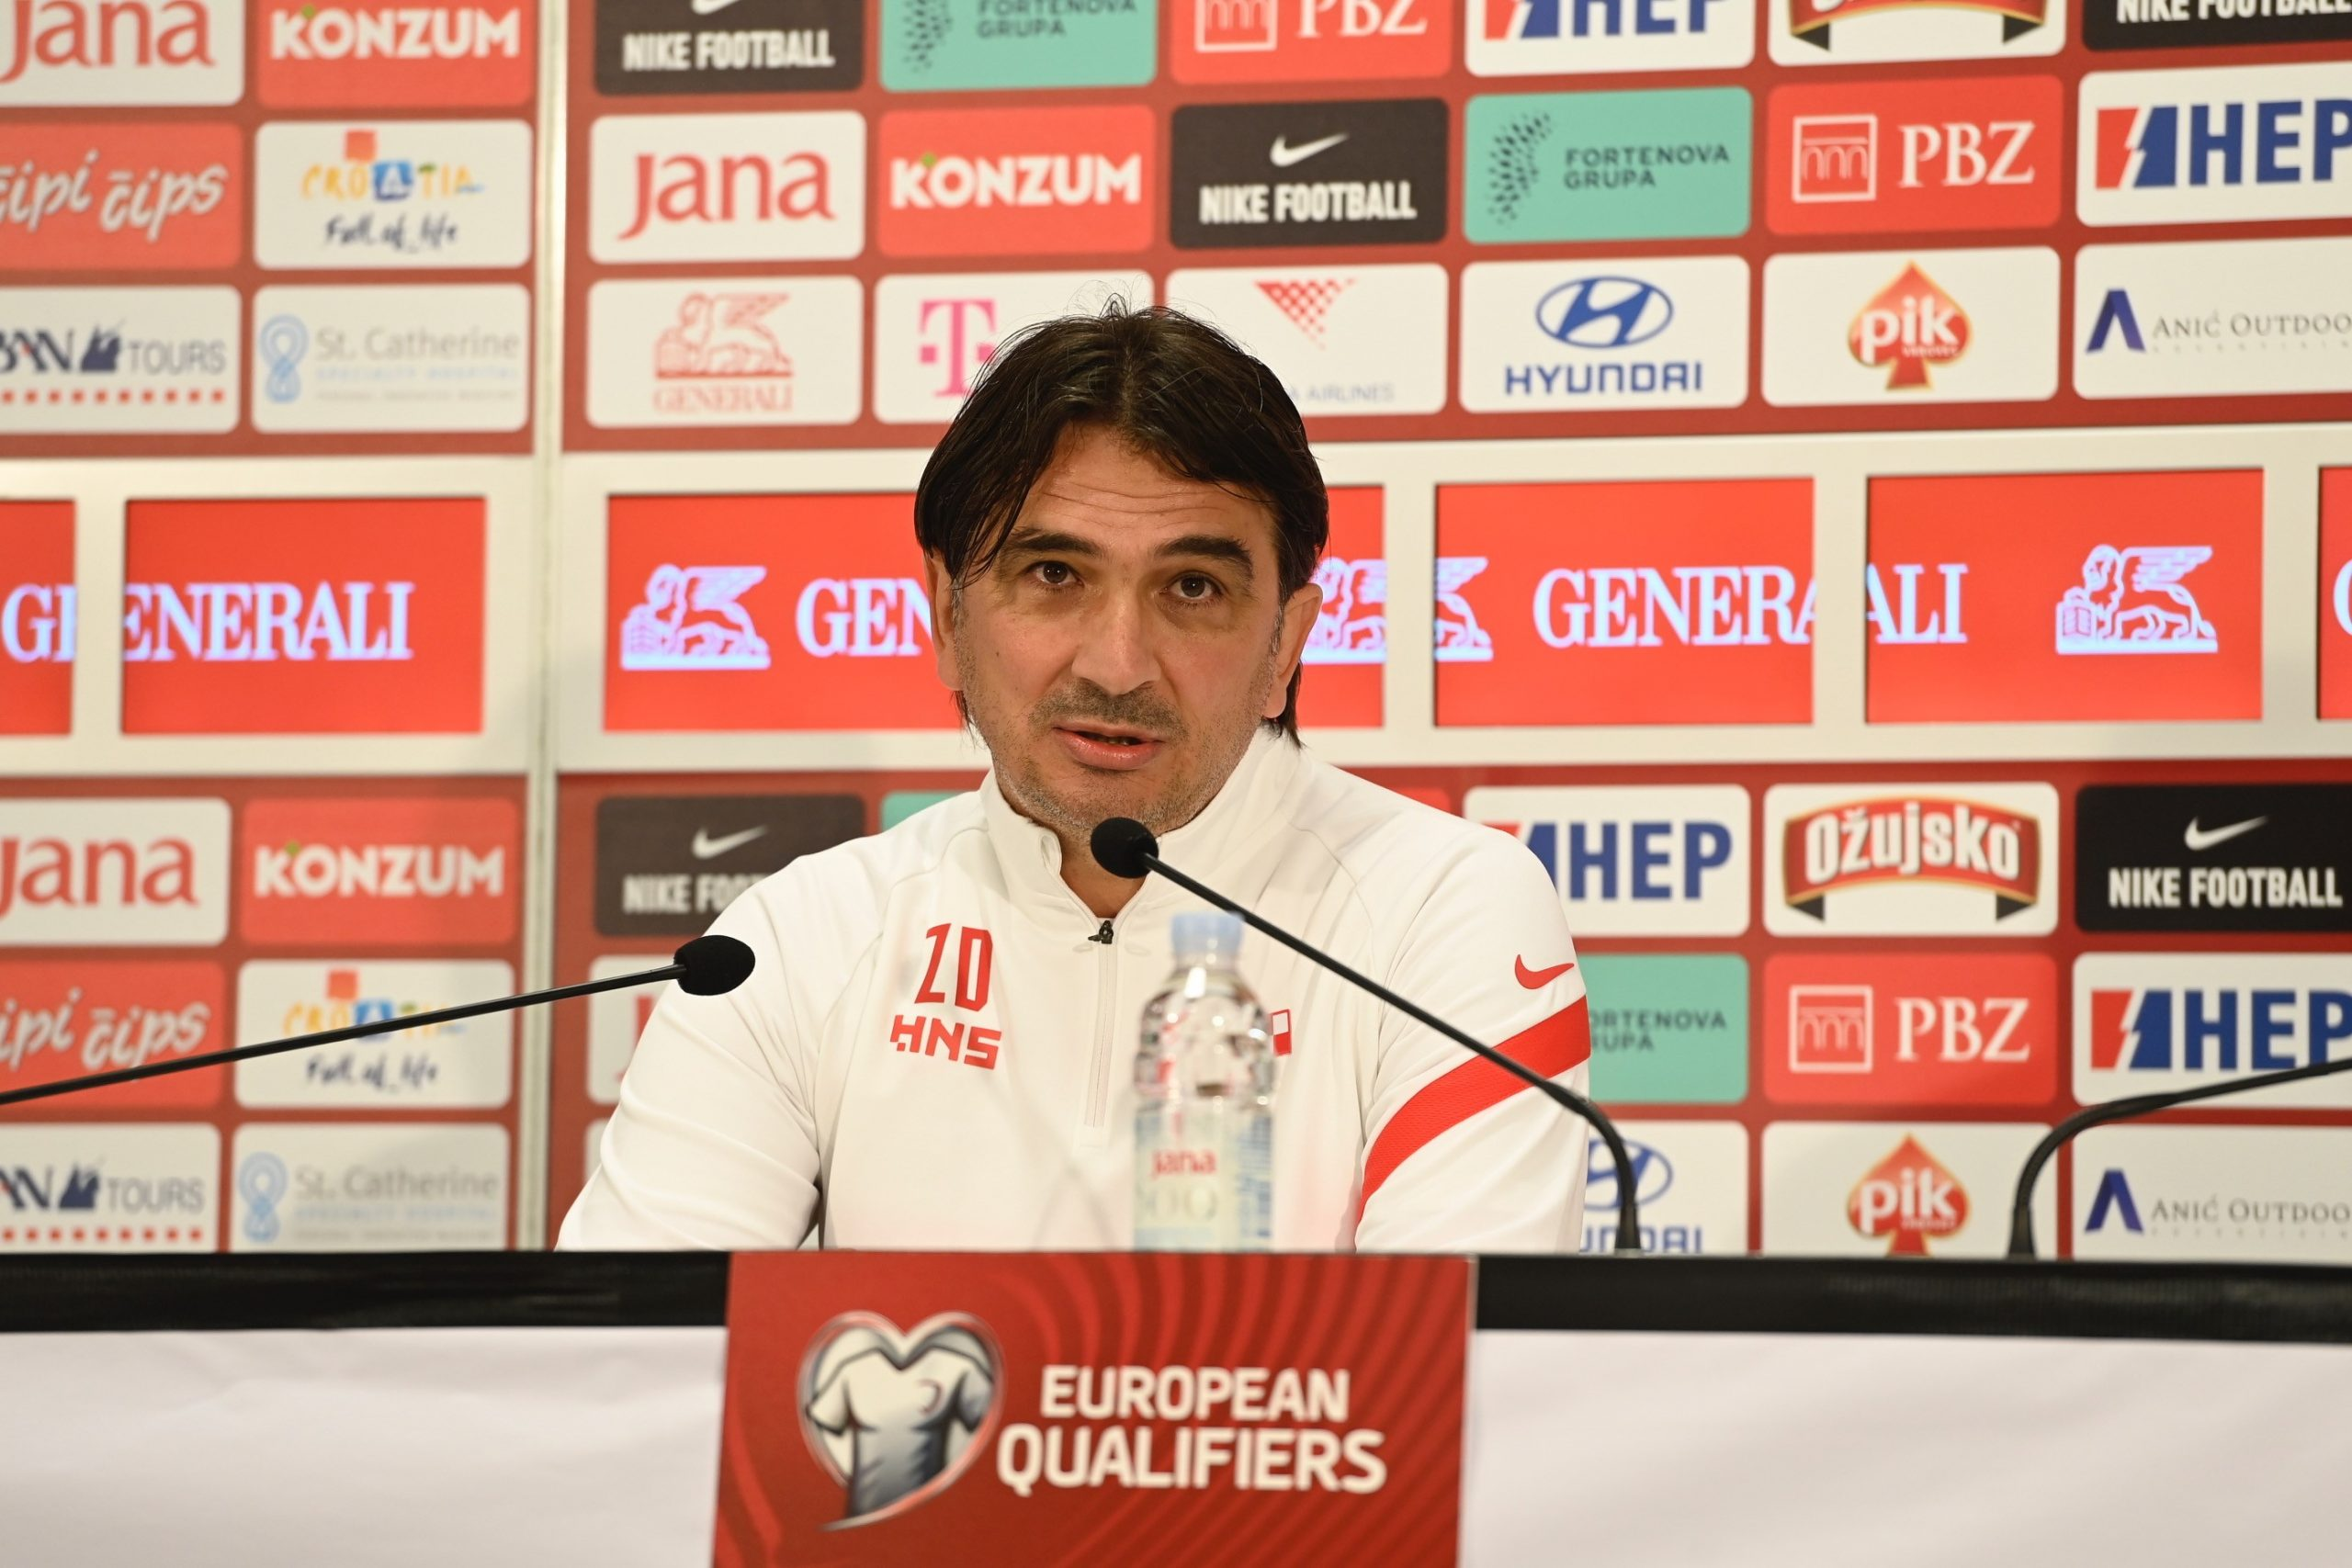 Croatia faces Malta in Rijeka on Tuesday to end their three-match cycle in the opening 2022 World Cup qualifiers.